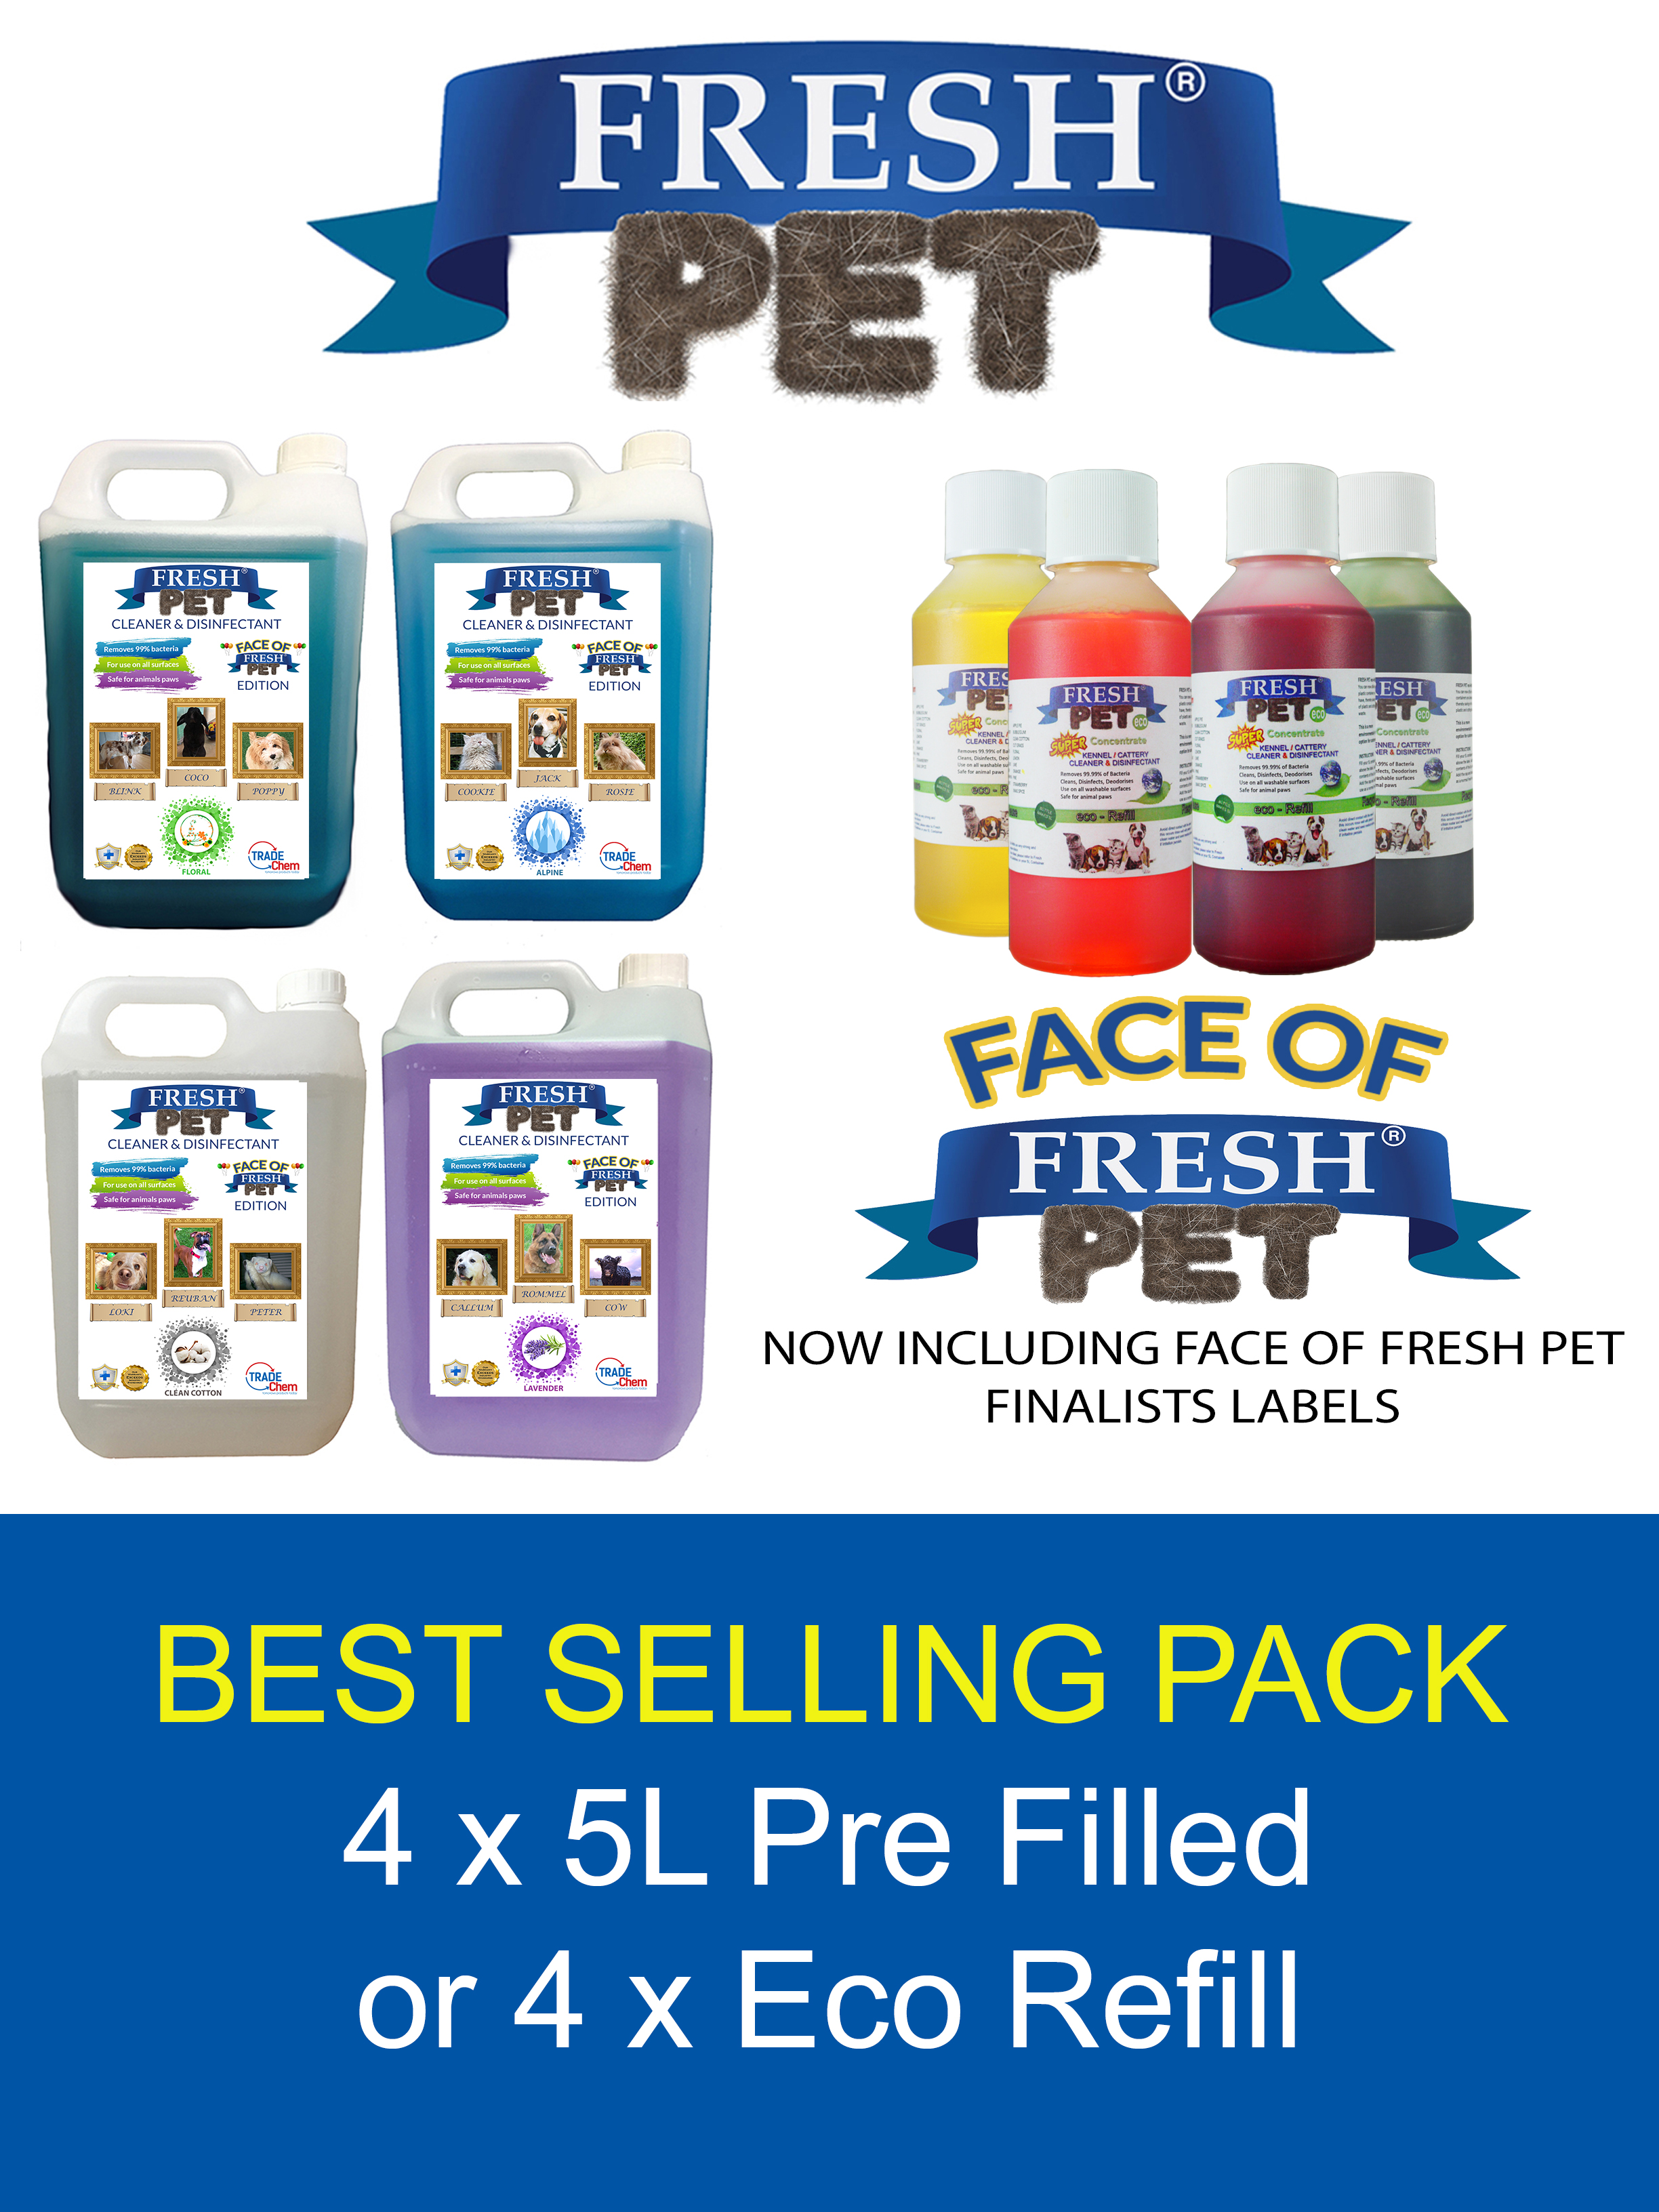 BASE FRESH PET BEST SELLING MIXED 20 PACK FOR 2018 WEB PICTURES 2